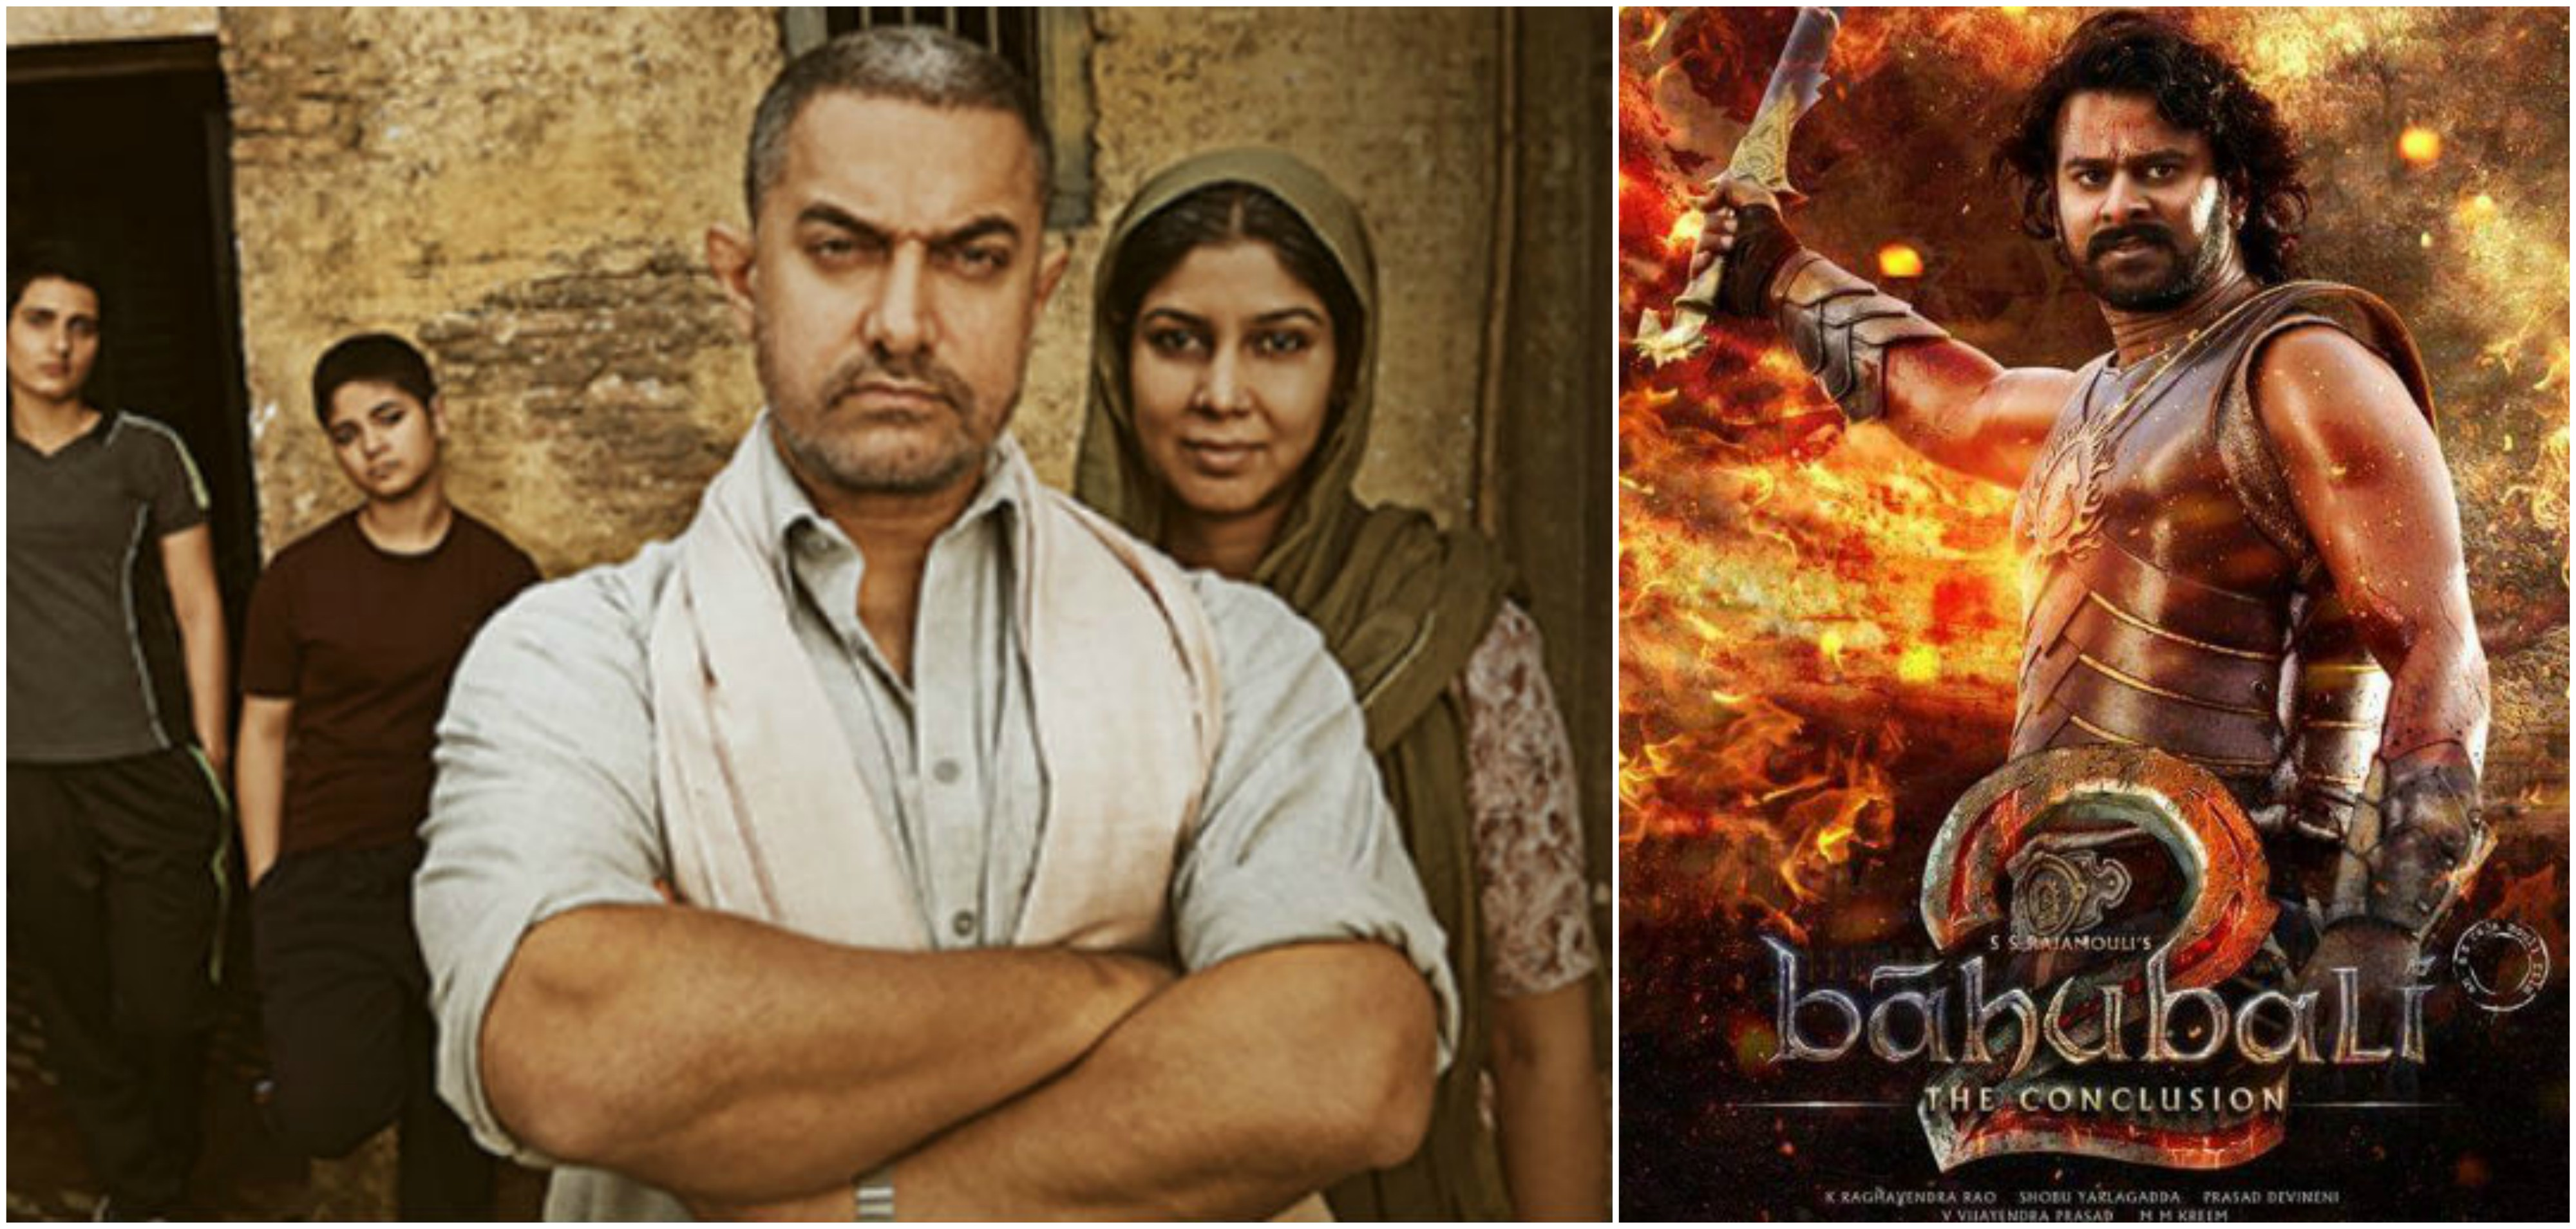 Photo : Dangal Movie beats Bahubali 2